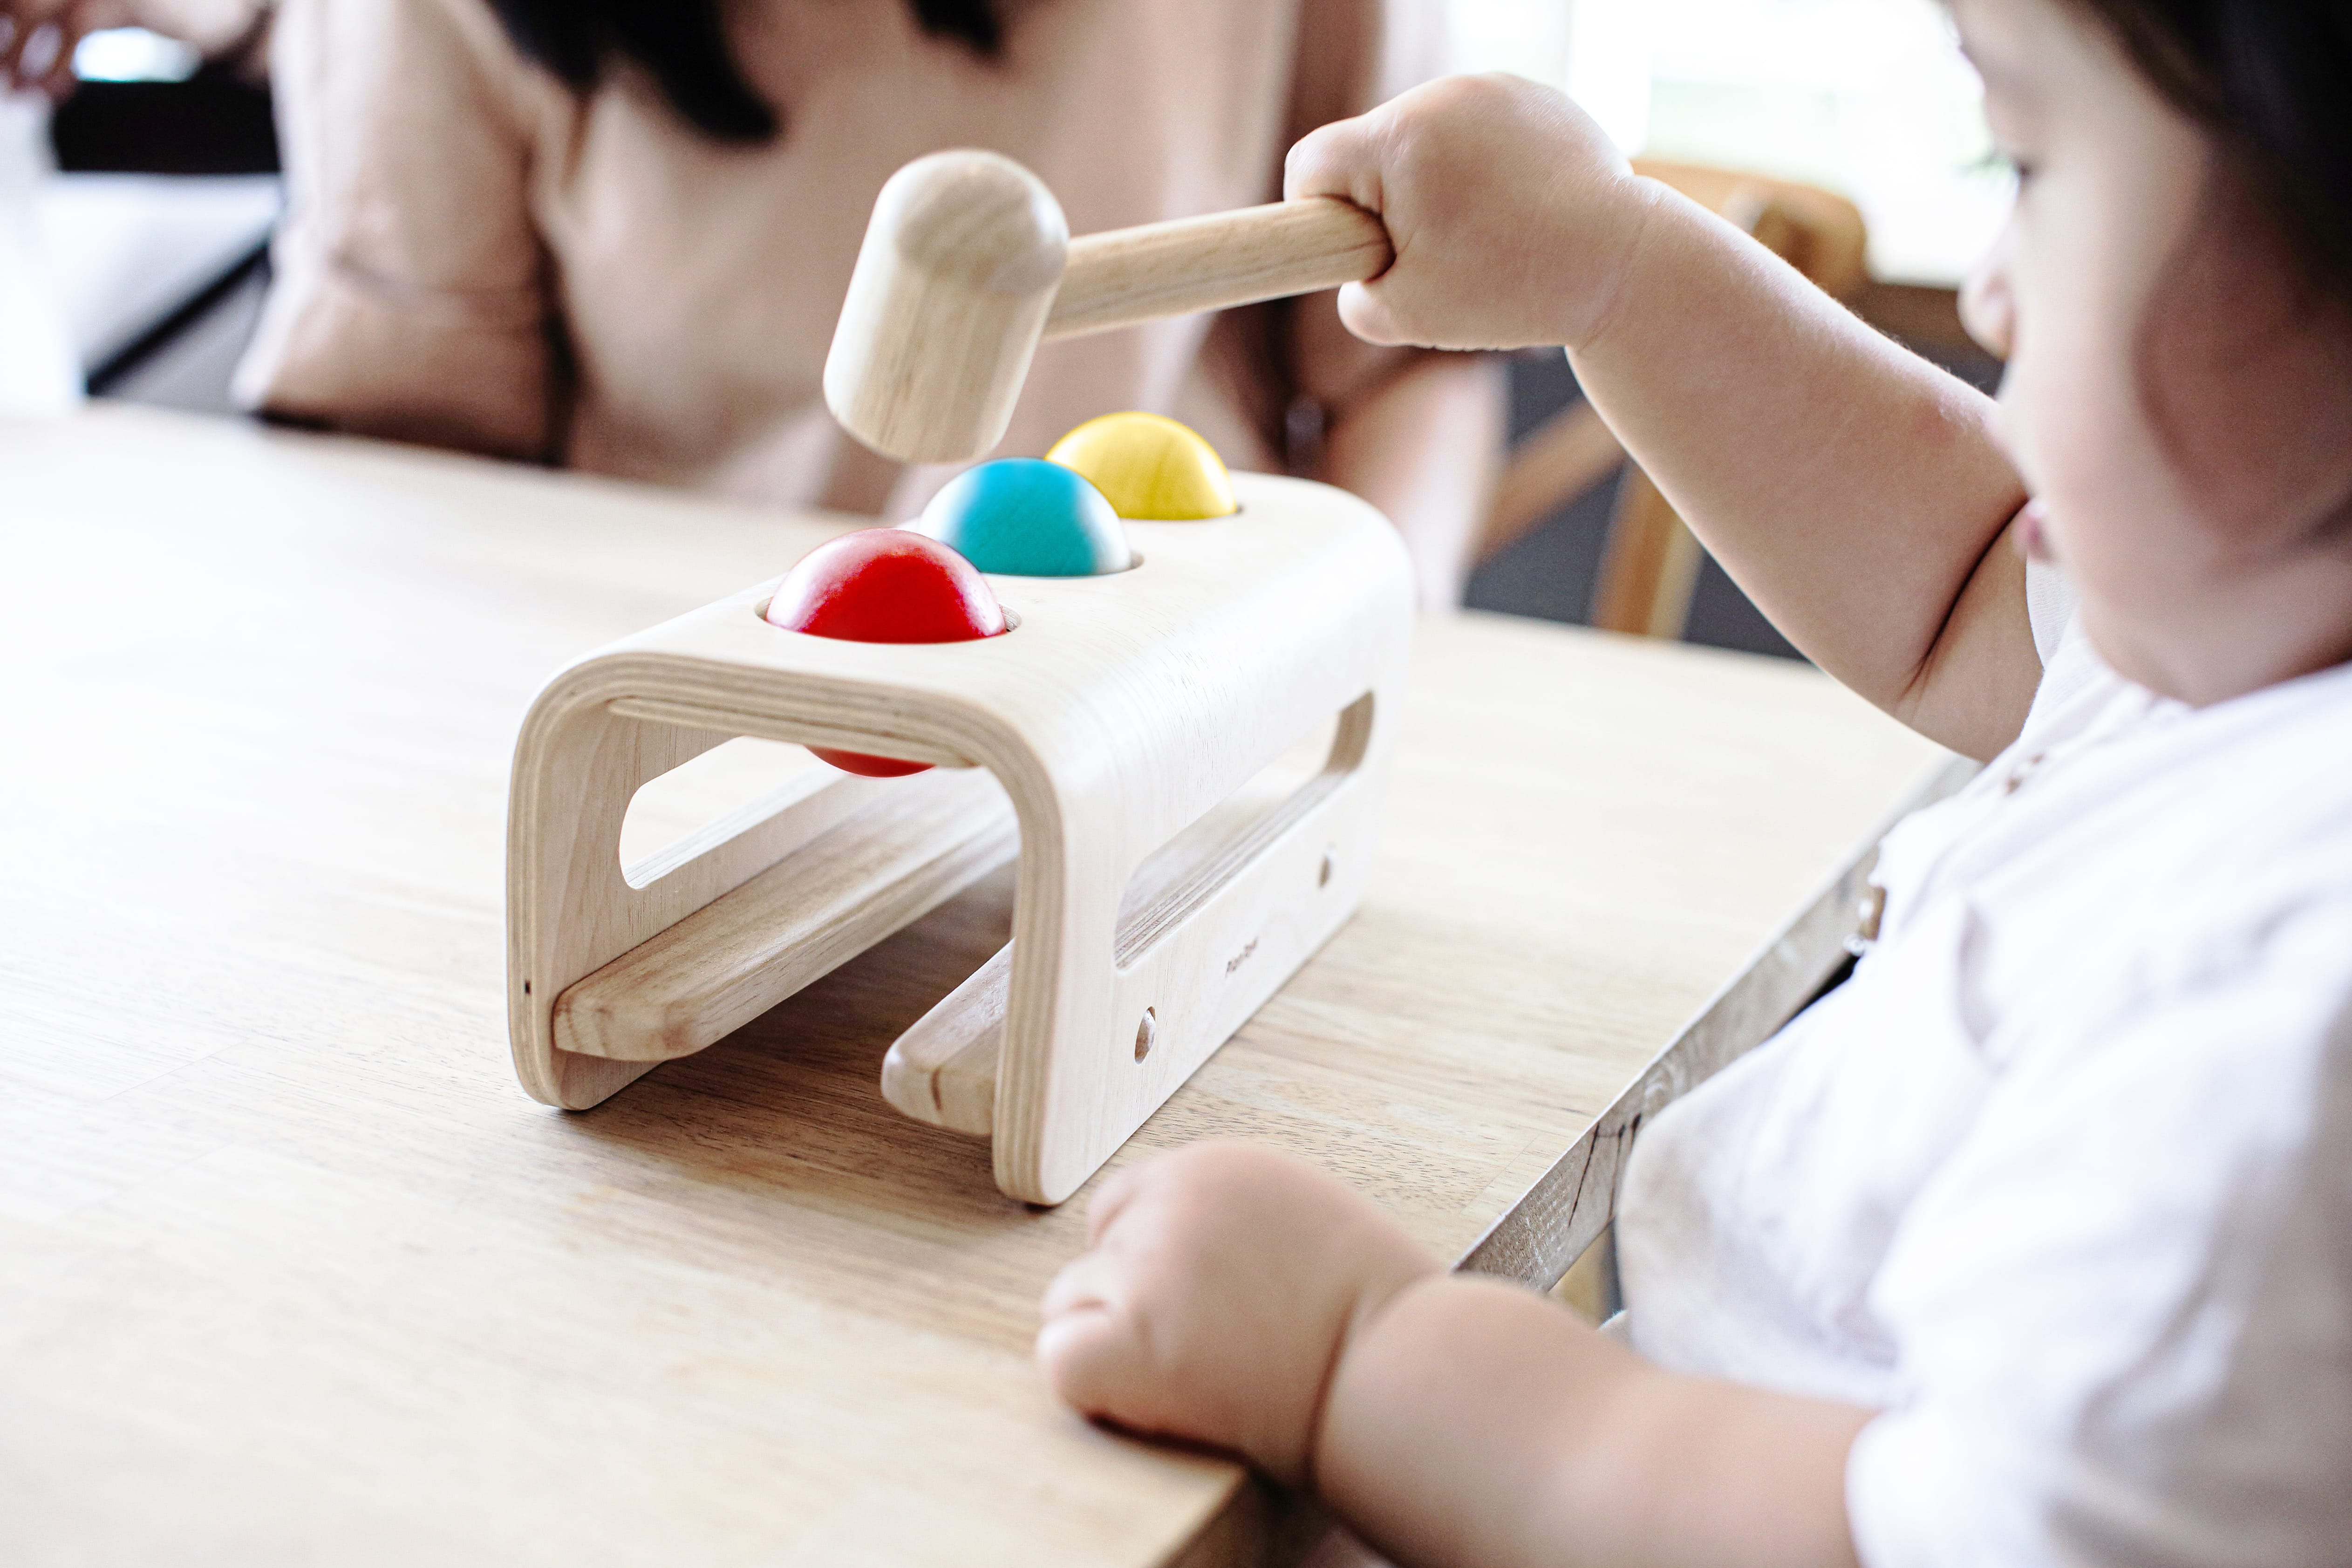 5396_PlanToys_HAMMER_BALLS_Learning_and_Education_Fine_Motor_Coordination_Visual_Mathematical_Language_and_Communications_12m_Wooden_toys_Education_toys_Safety_Toys_Non-toxic_1.jpg